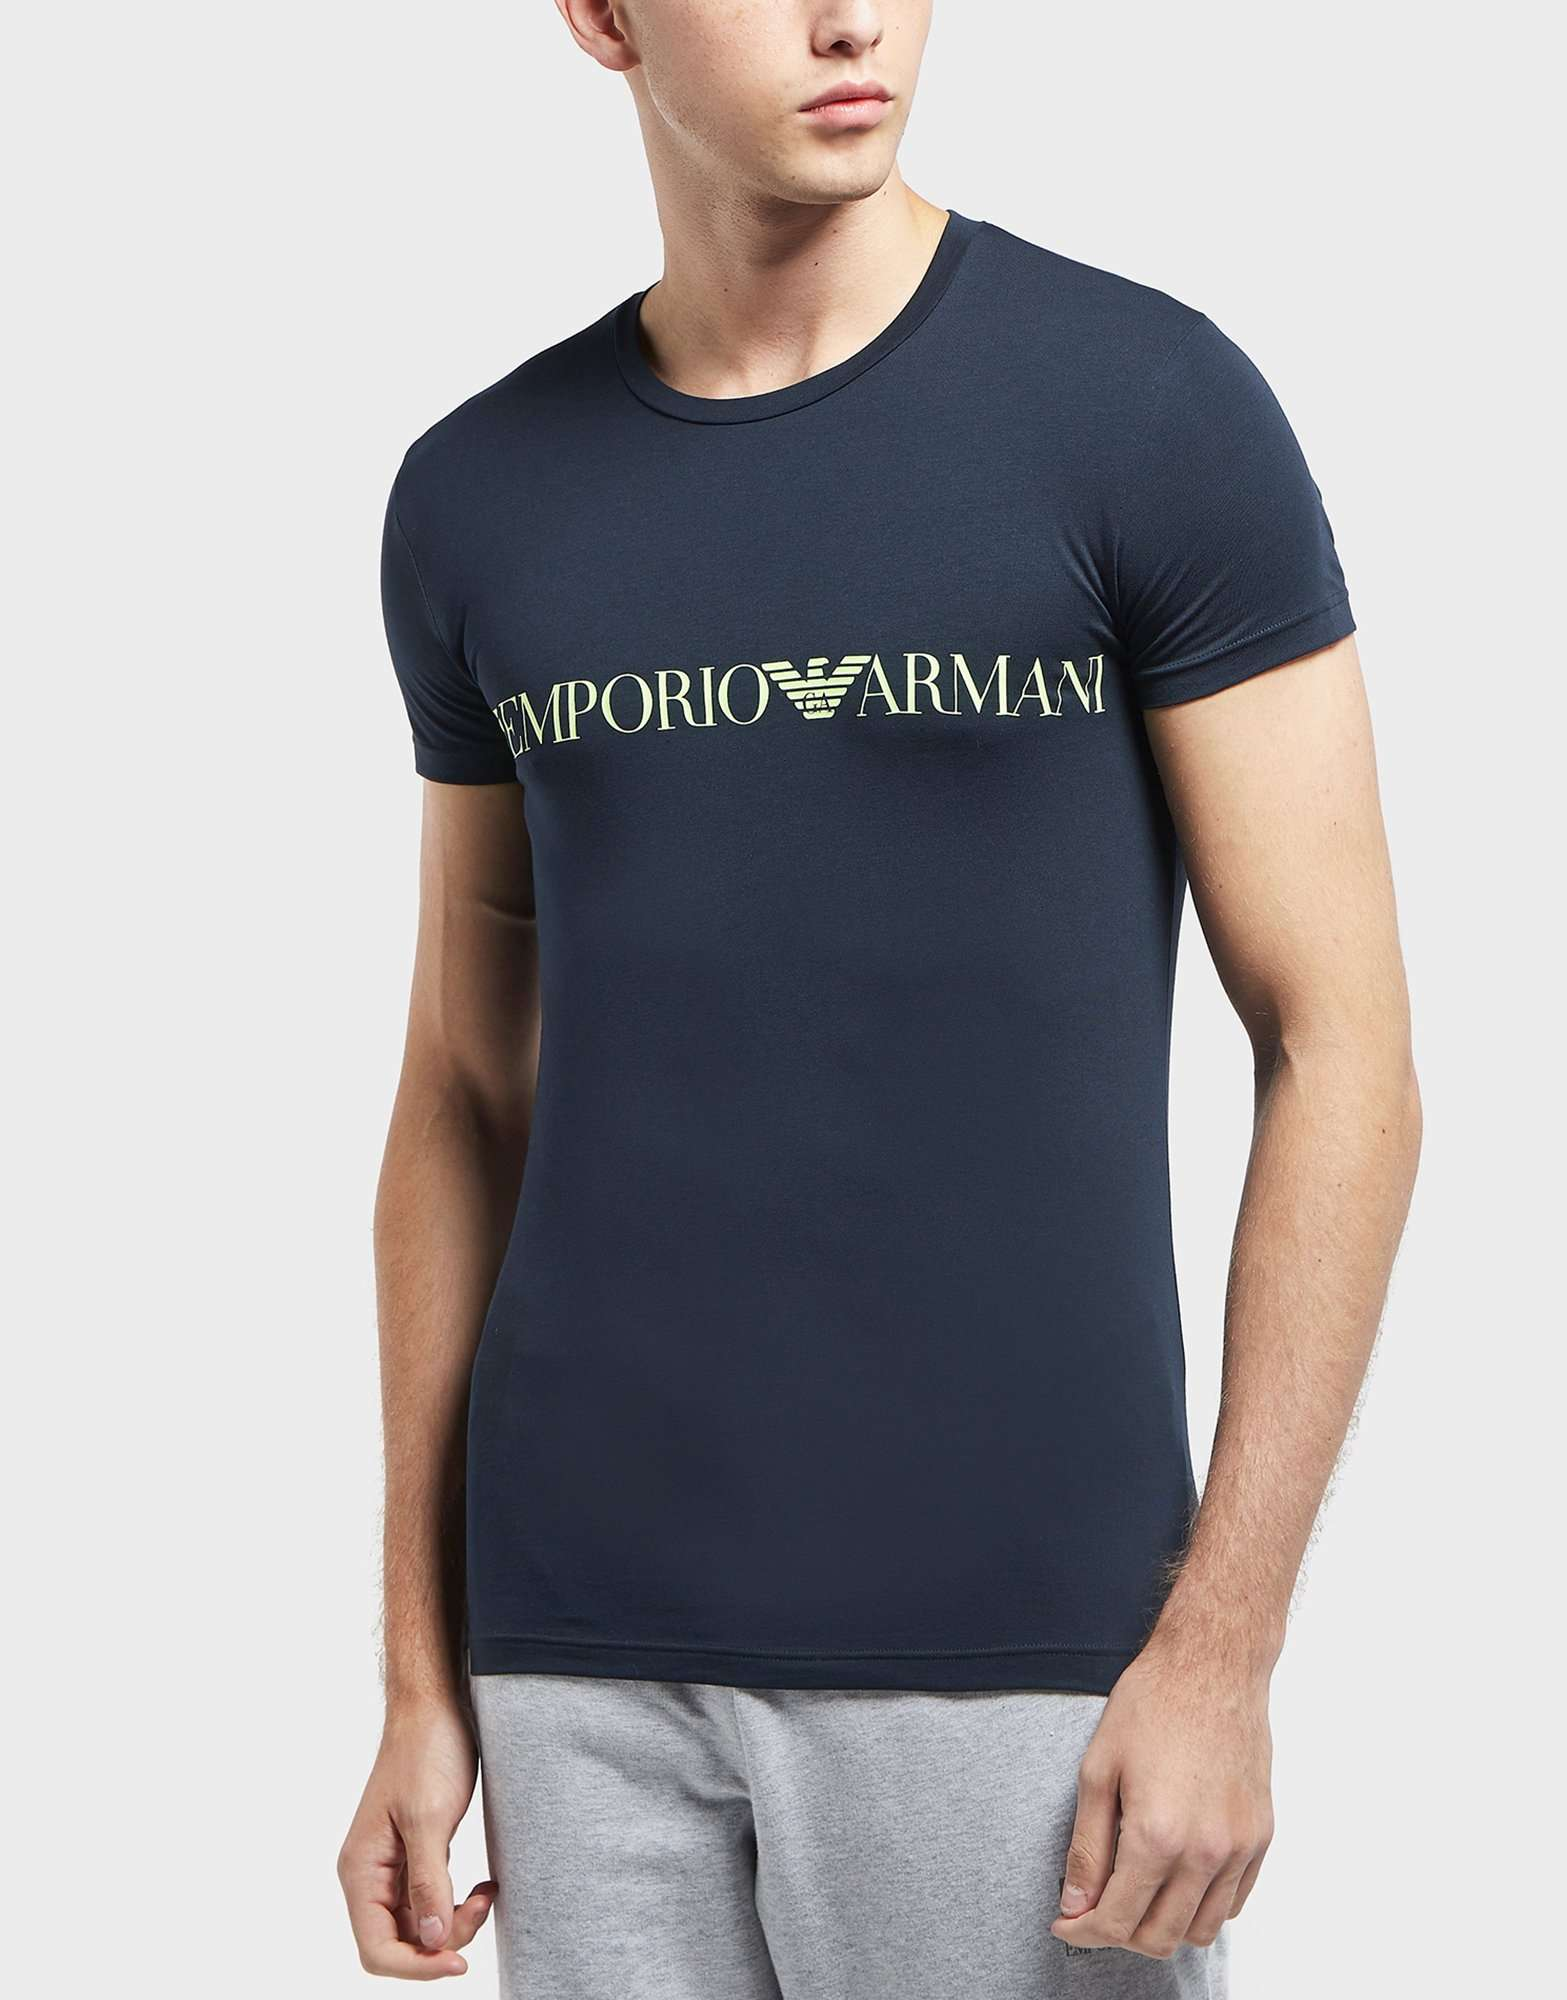 Emporio Armani Chest Band Short Sleeve T-Shirt